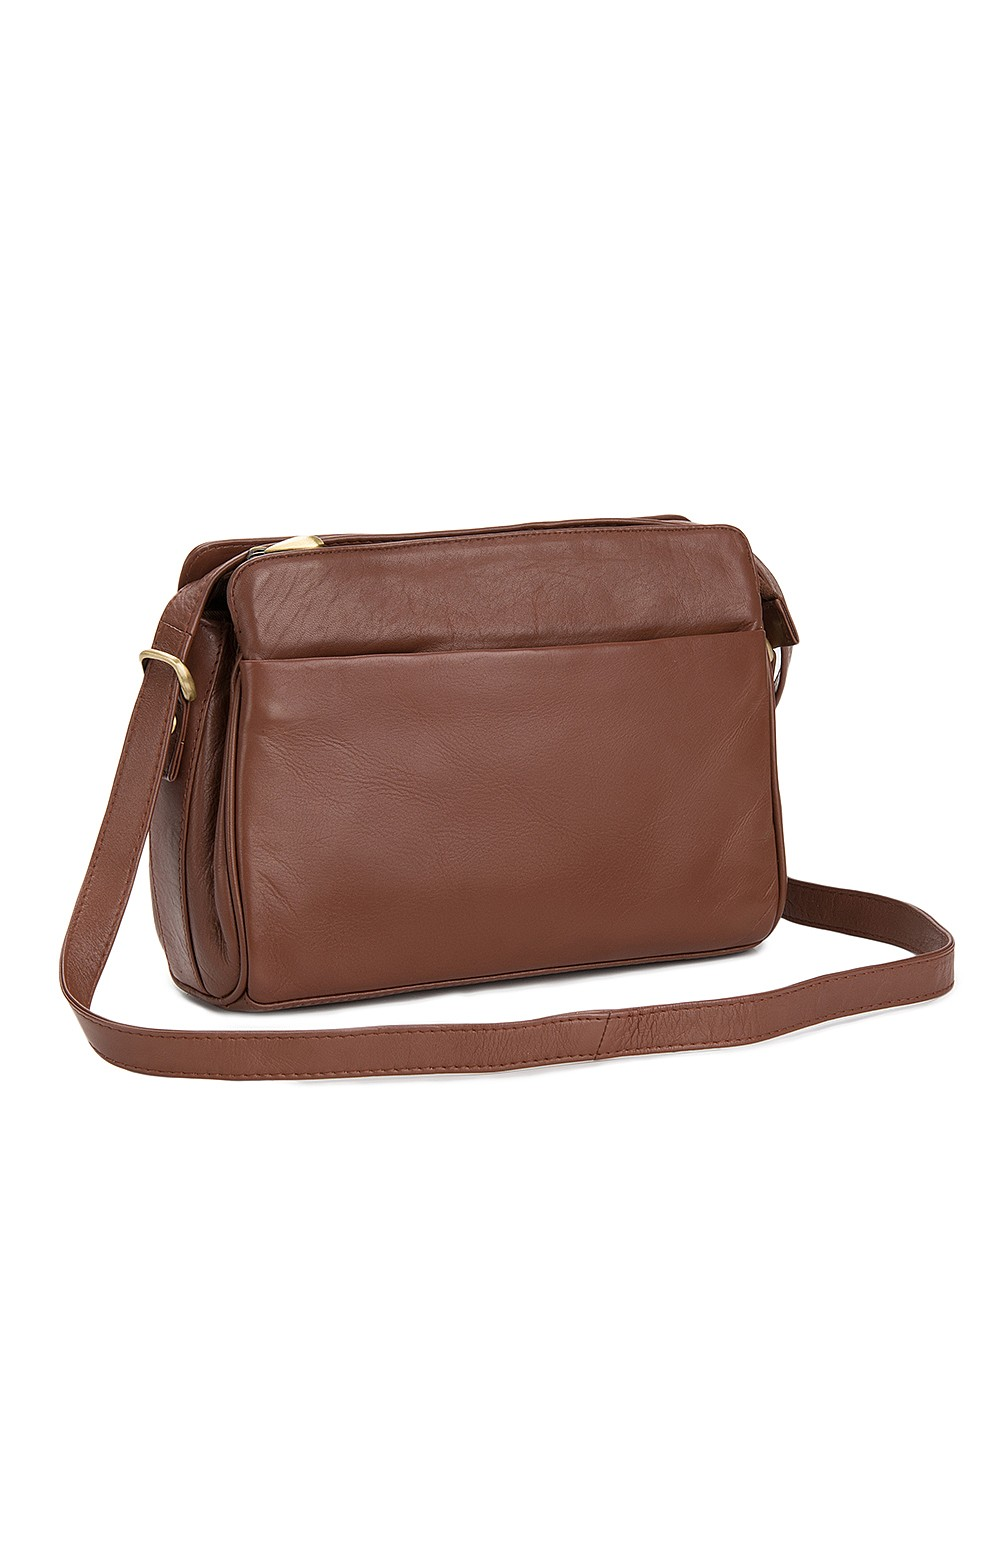 2b5426041378 ... Small Leathers Leather Bags. Front Compartment Bag. Loading zoom